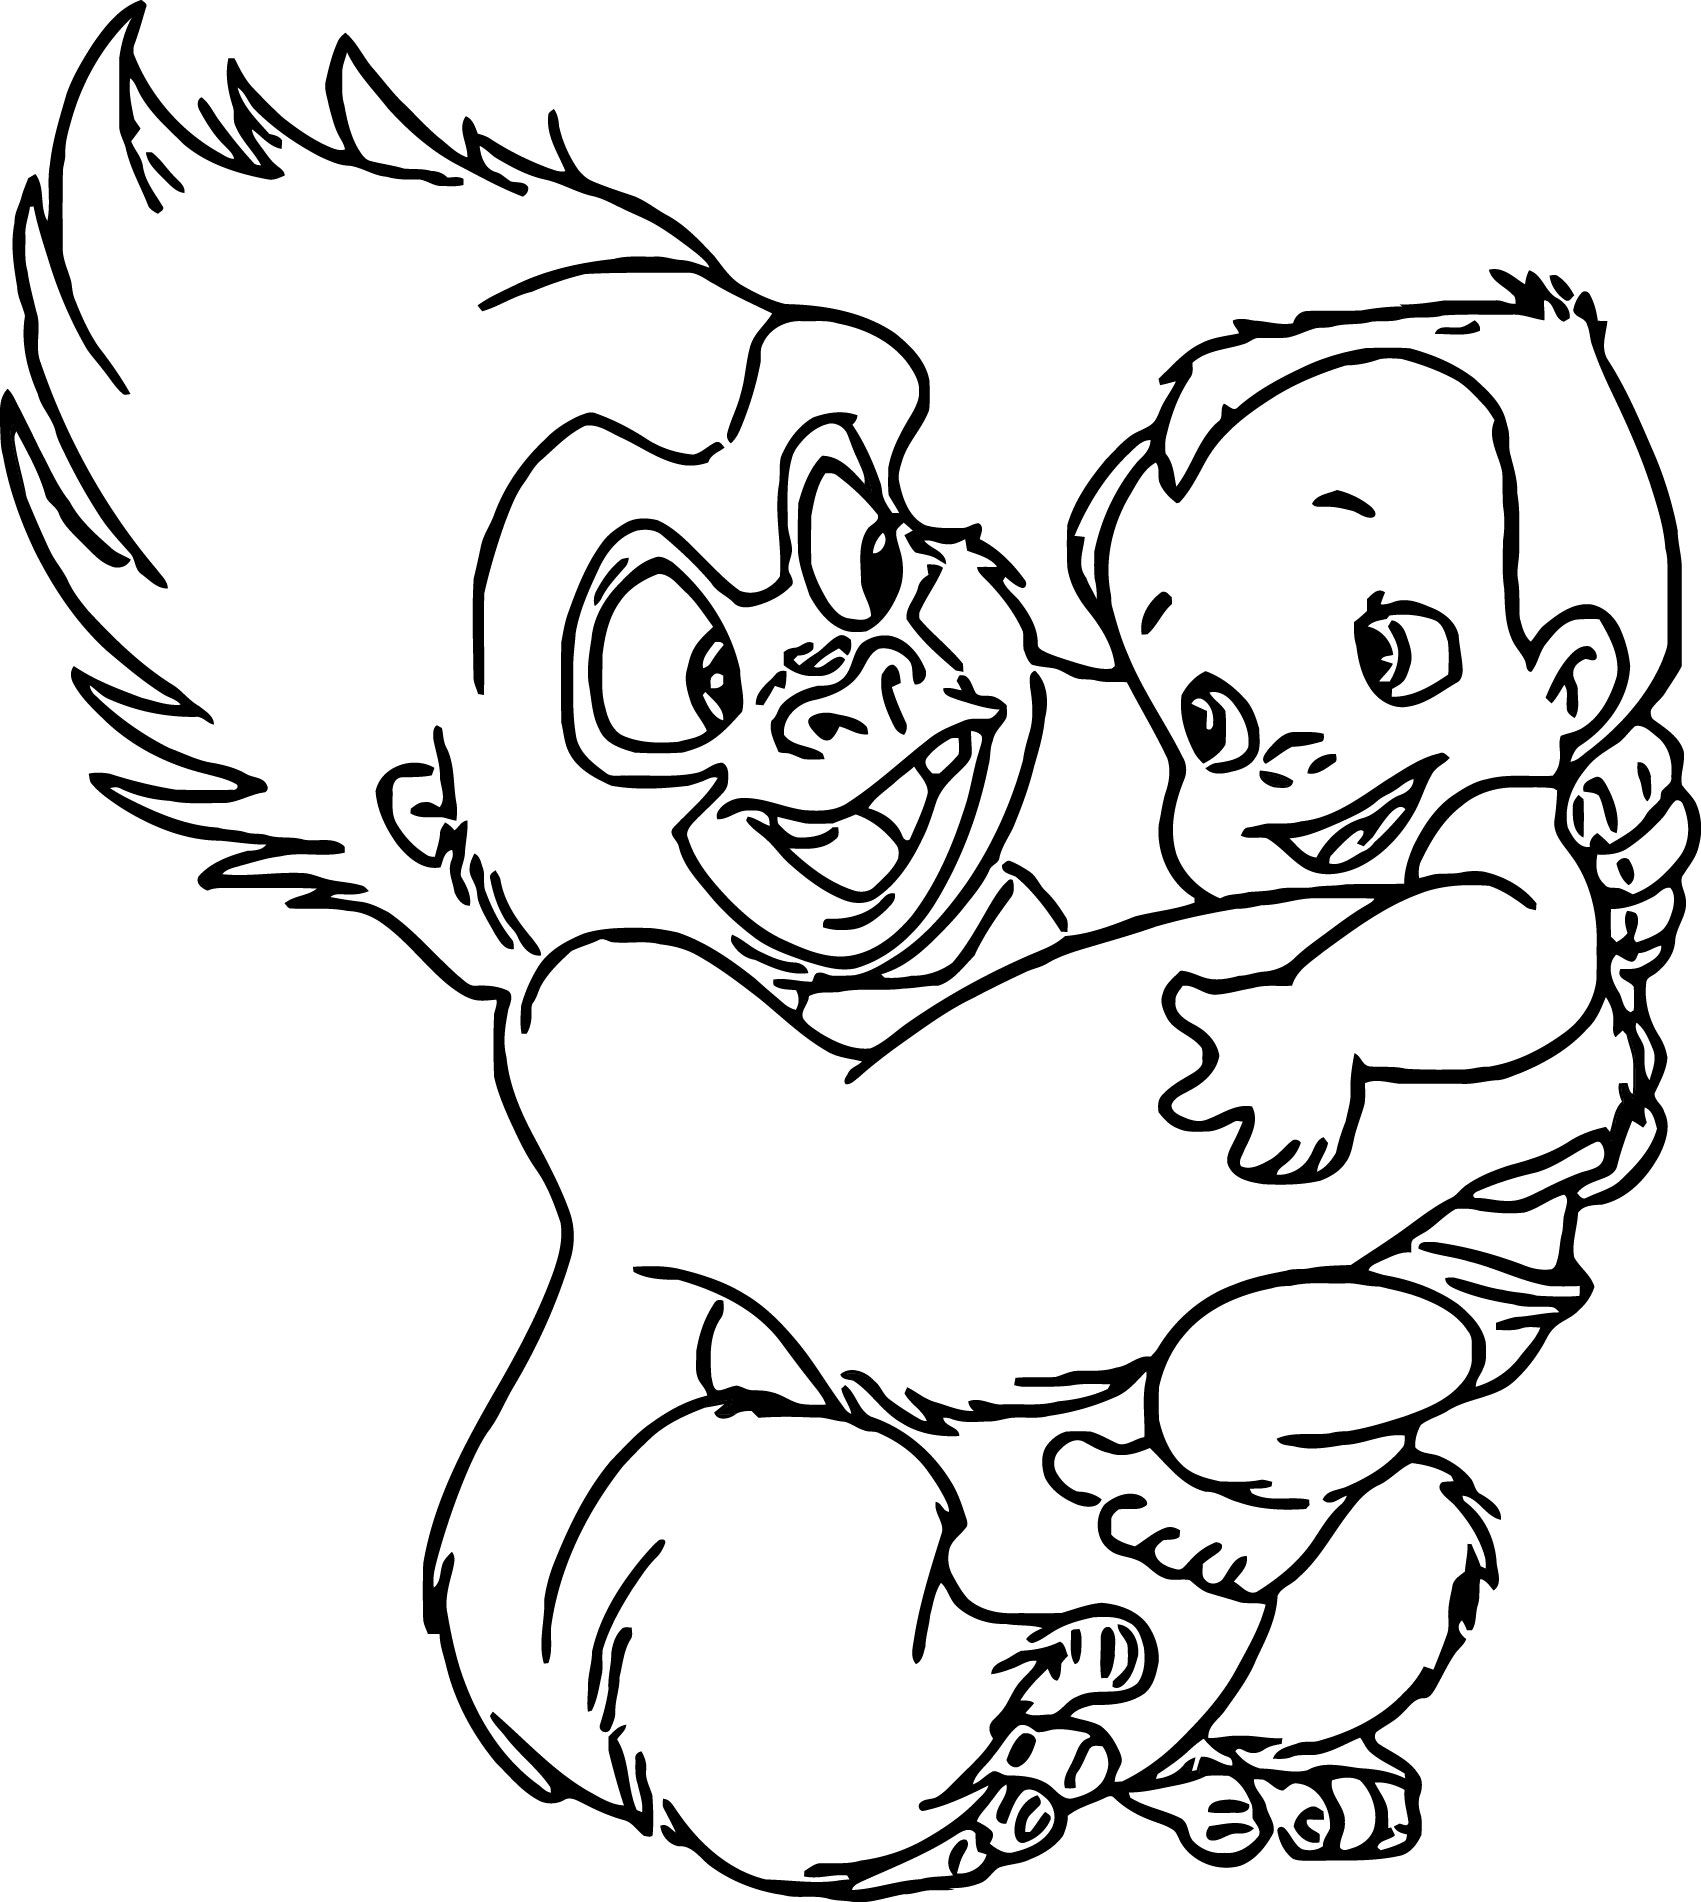 Disney Baby Tarzan Coloring Pages | Colorear, Negro y Blanco